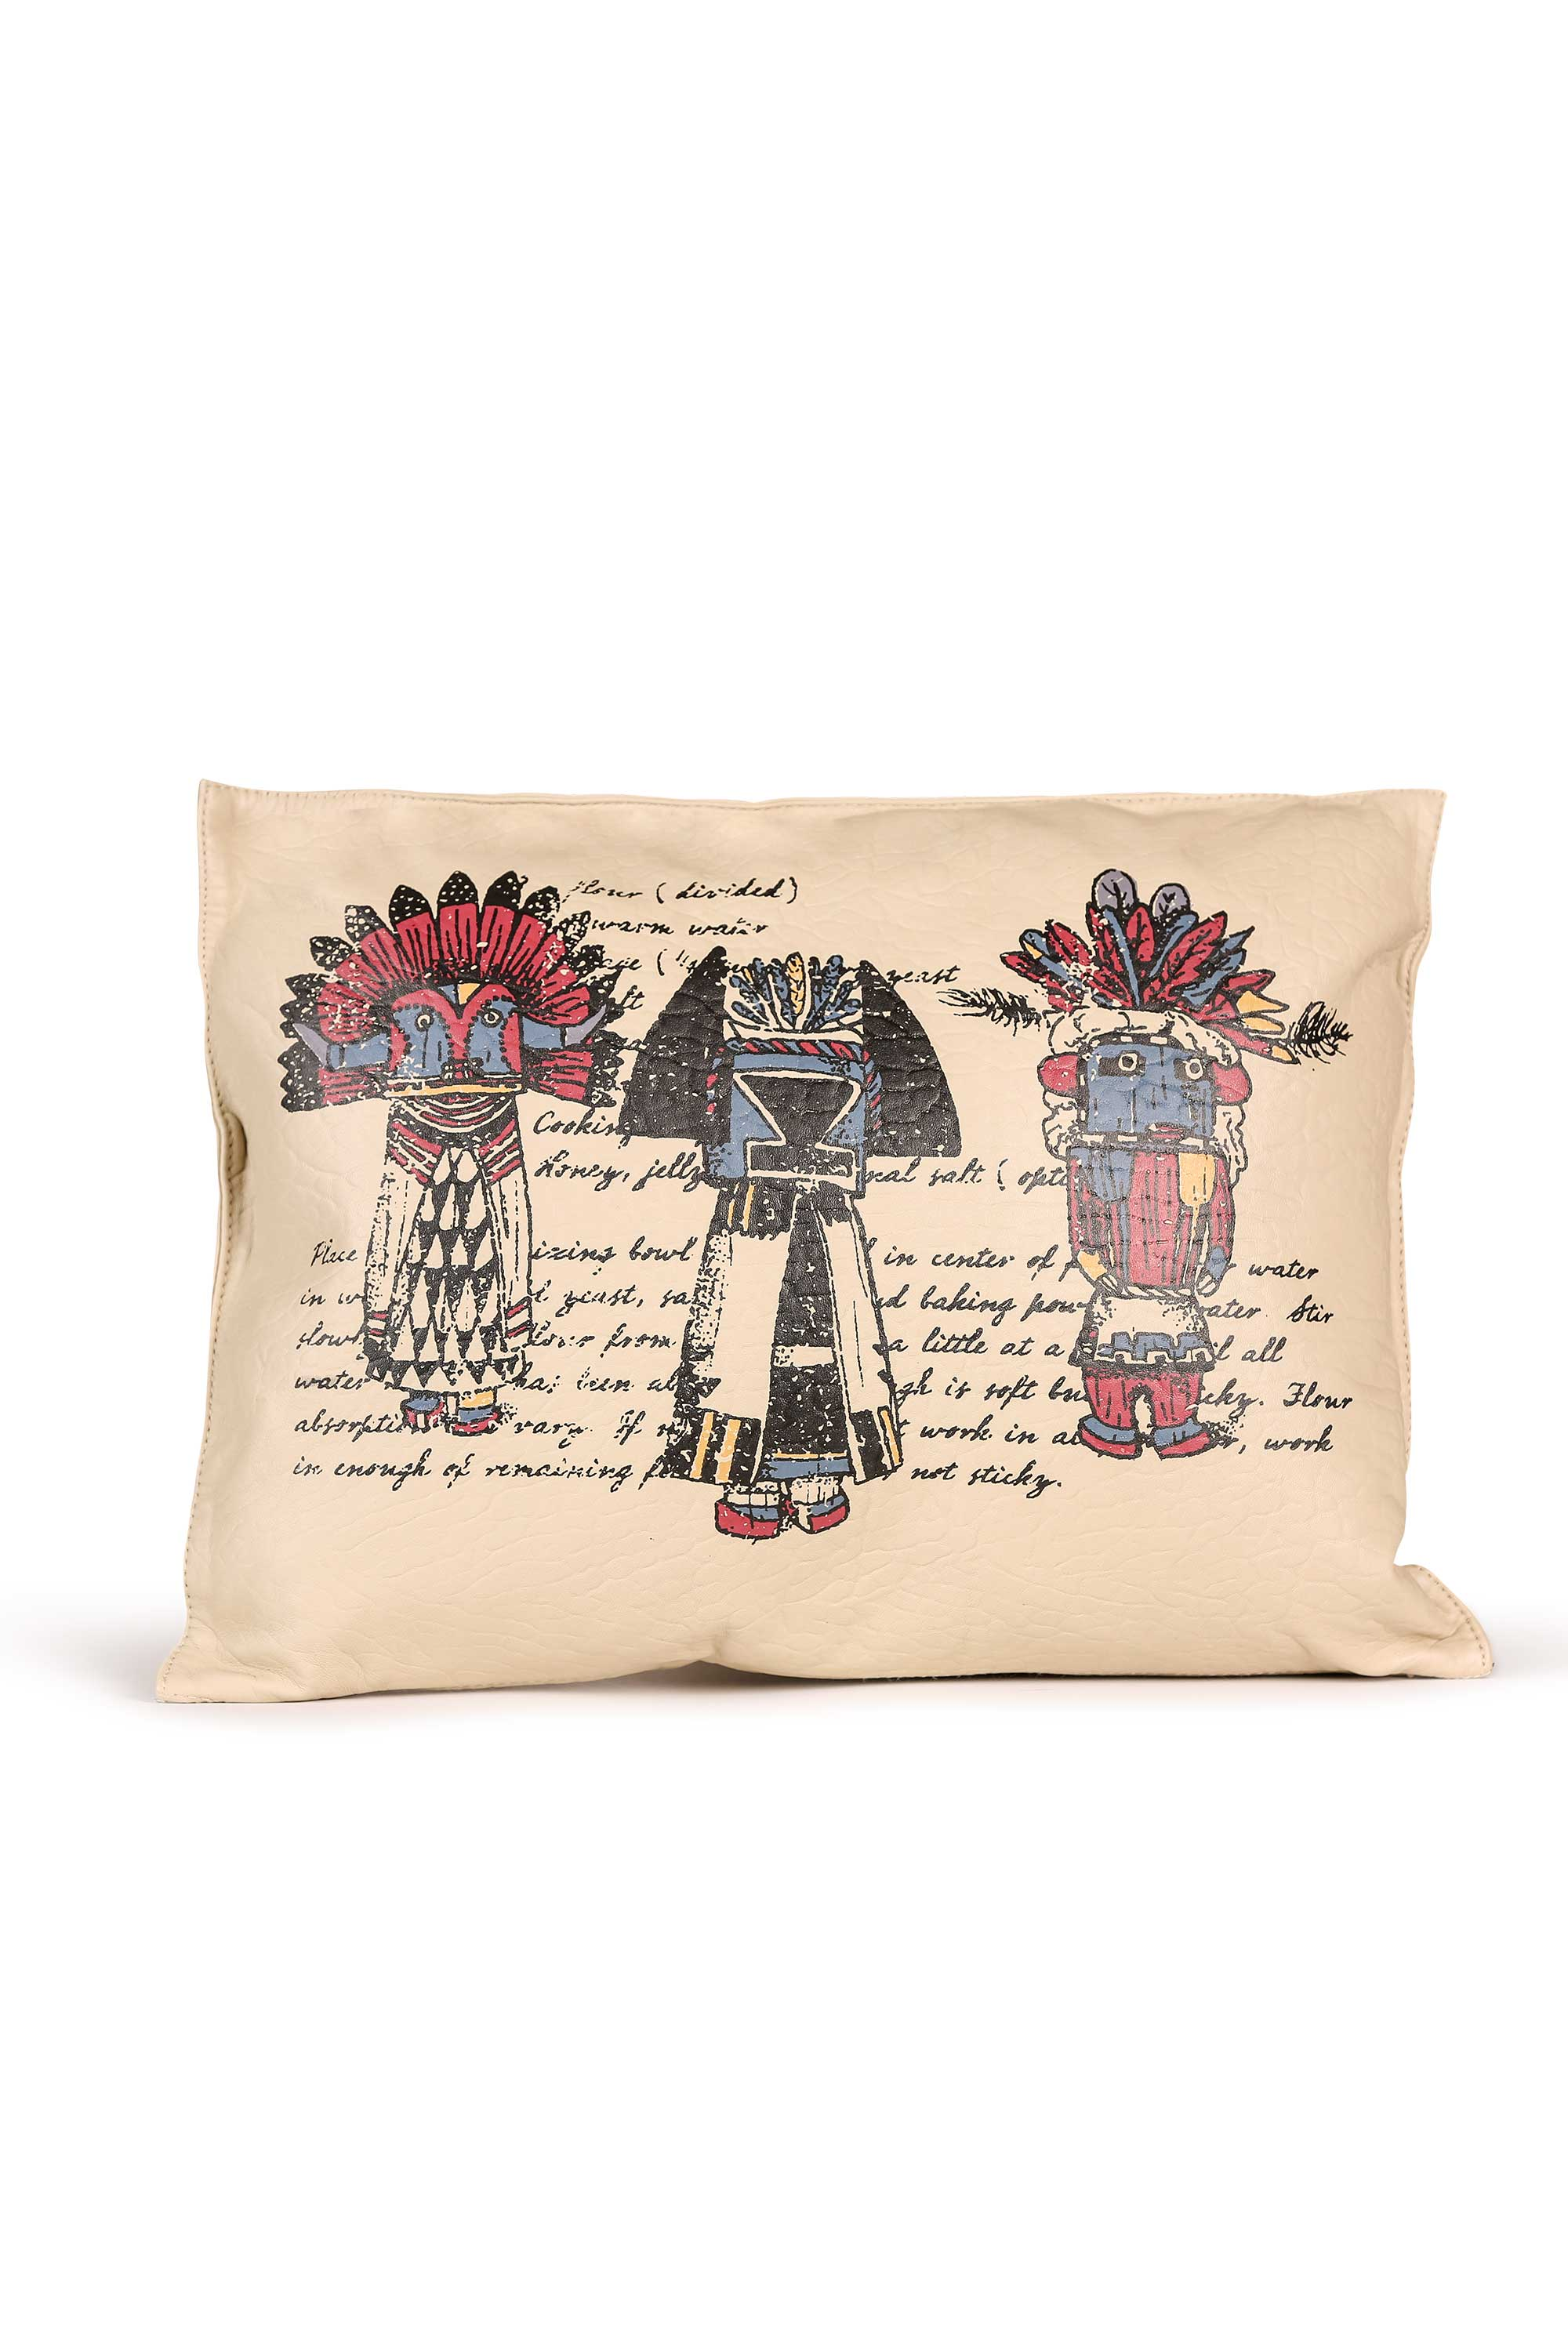 Pillow, Leather, Hopi Kachina